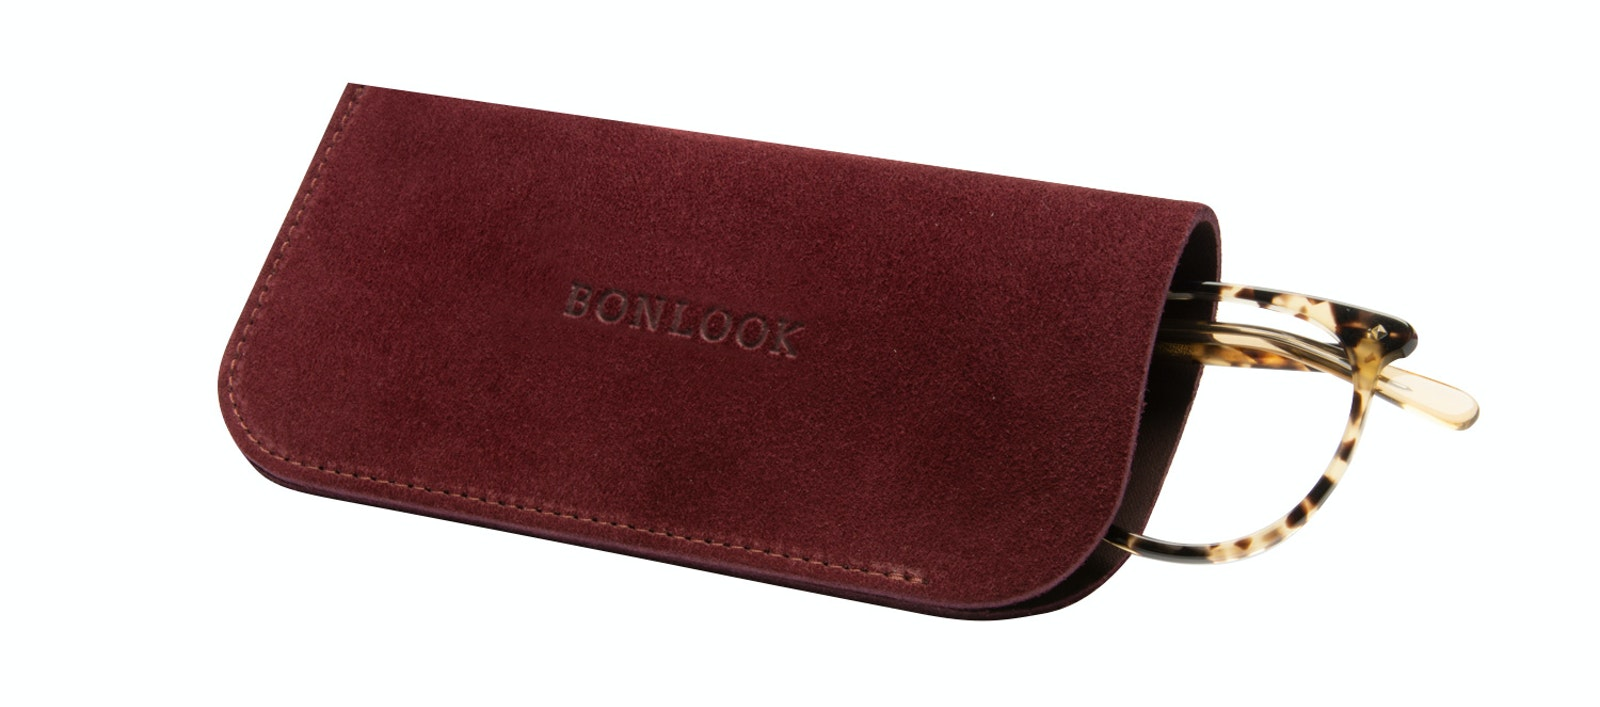 Affordable Fashion Glasses Accessory Men Women Sleeve Case  Burgundy Suede Tilt